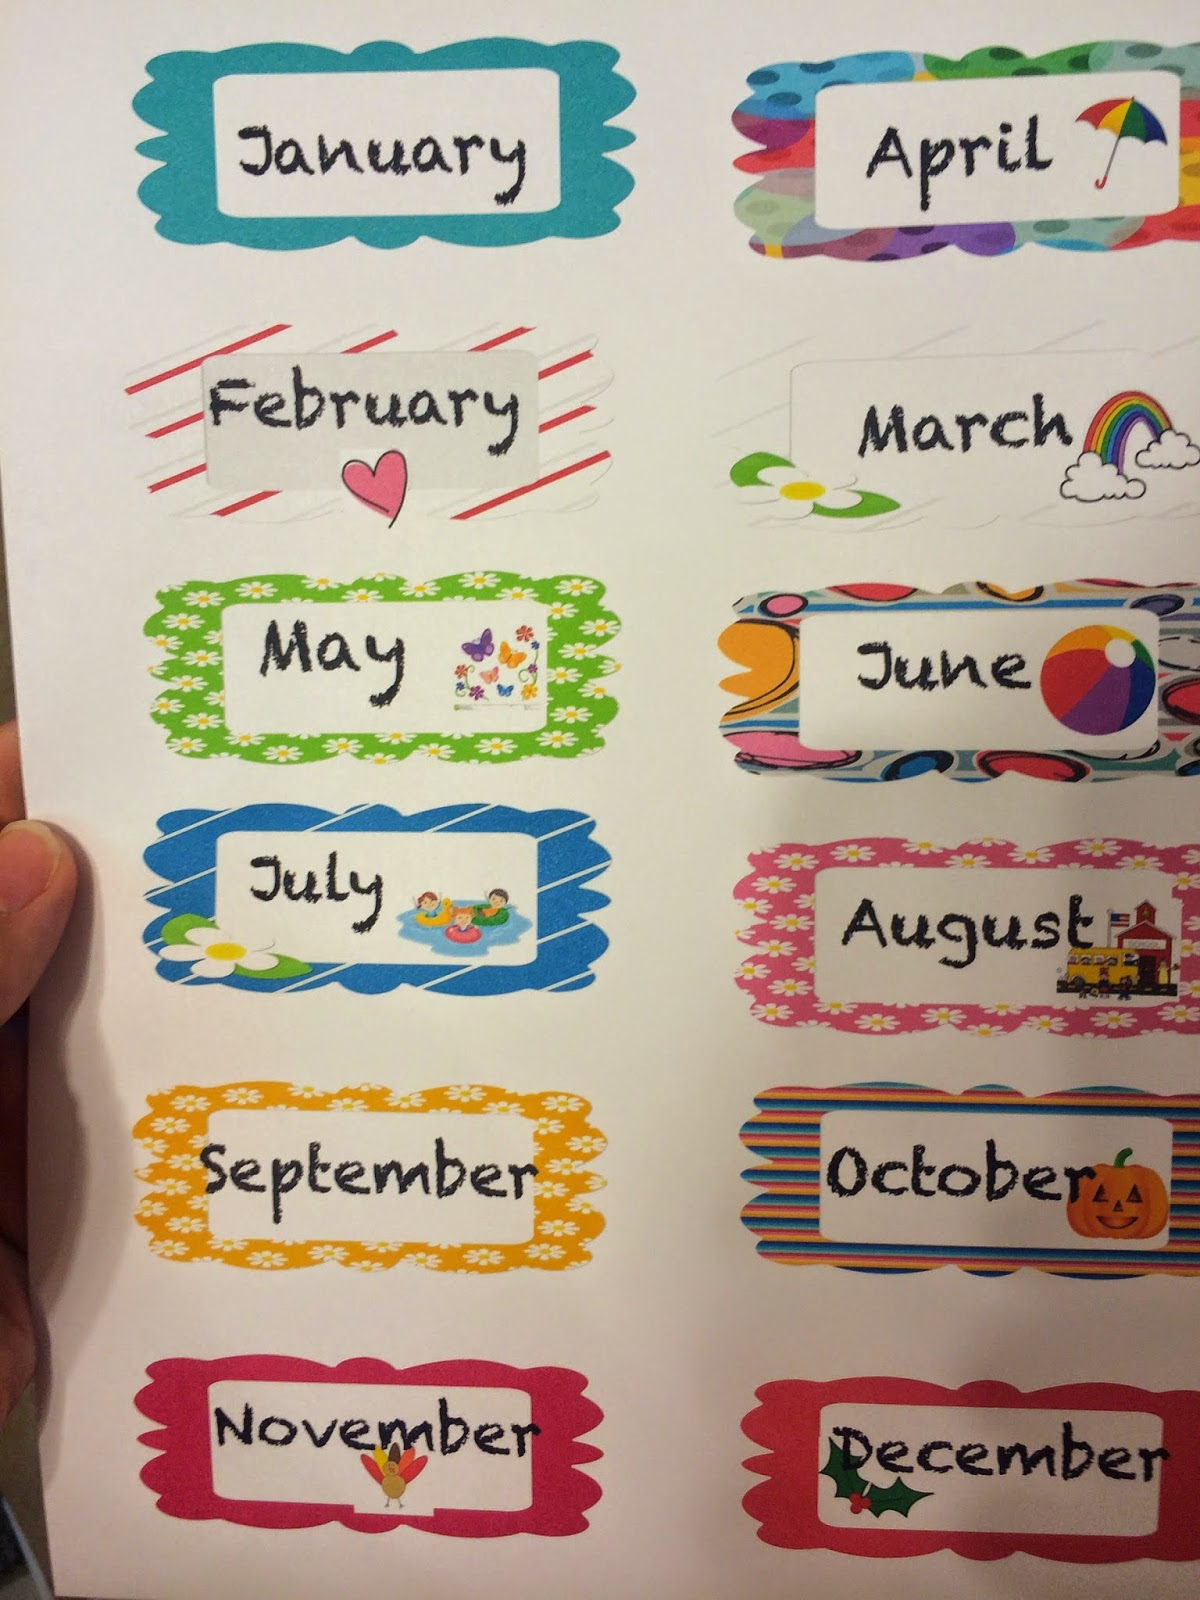 One Sweet World In First Months Of The Year For A Birthday Chart